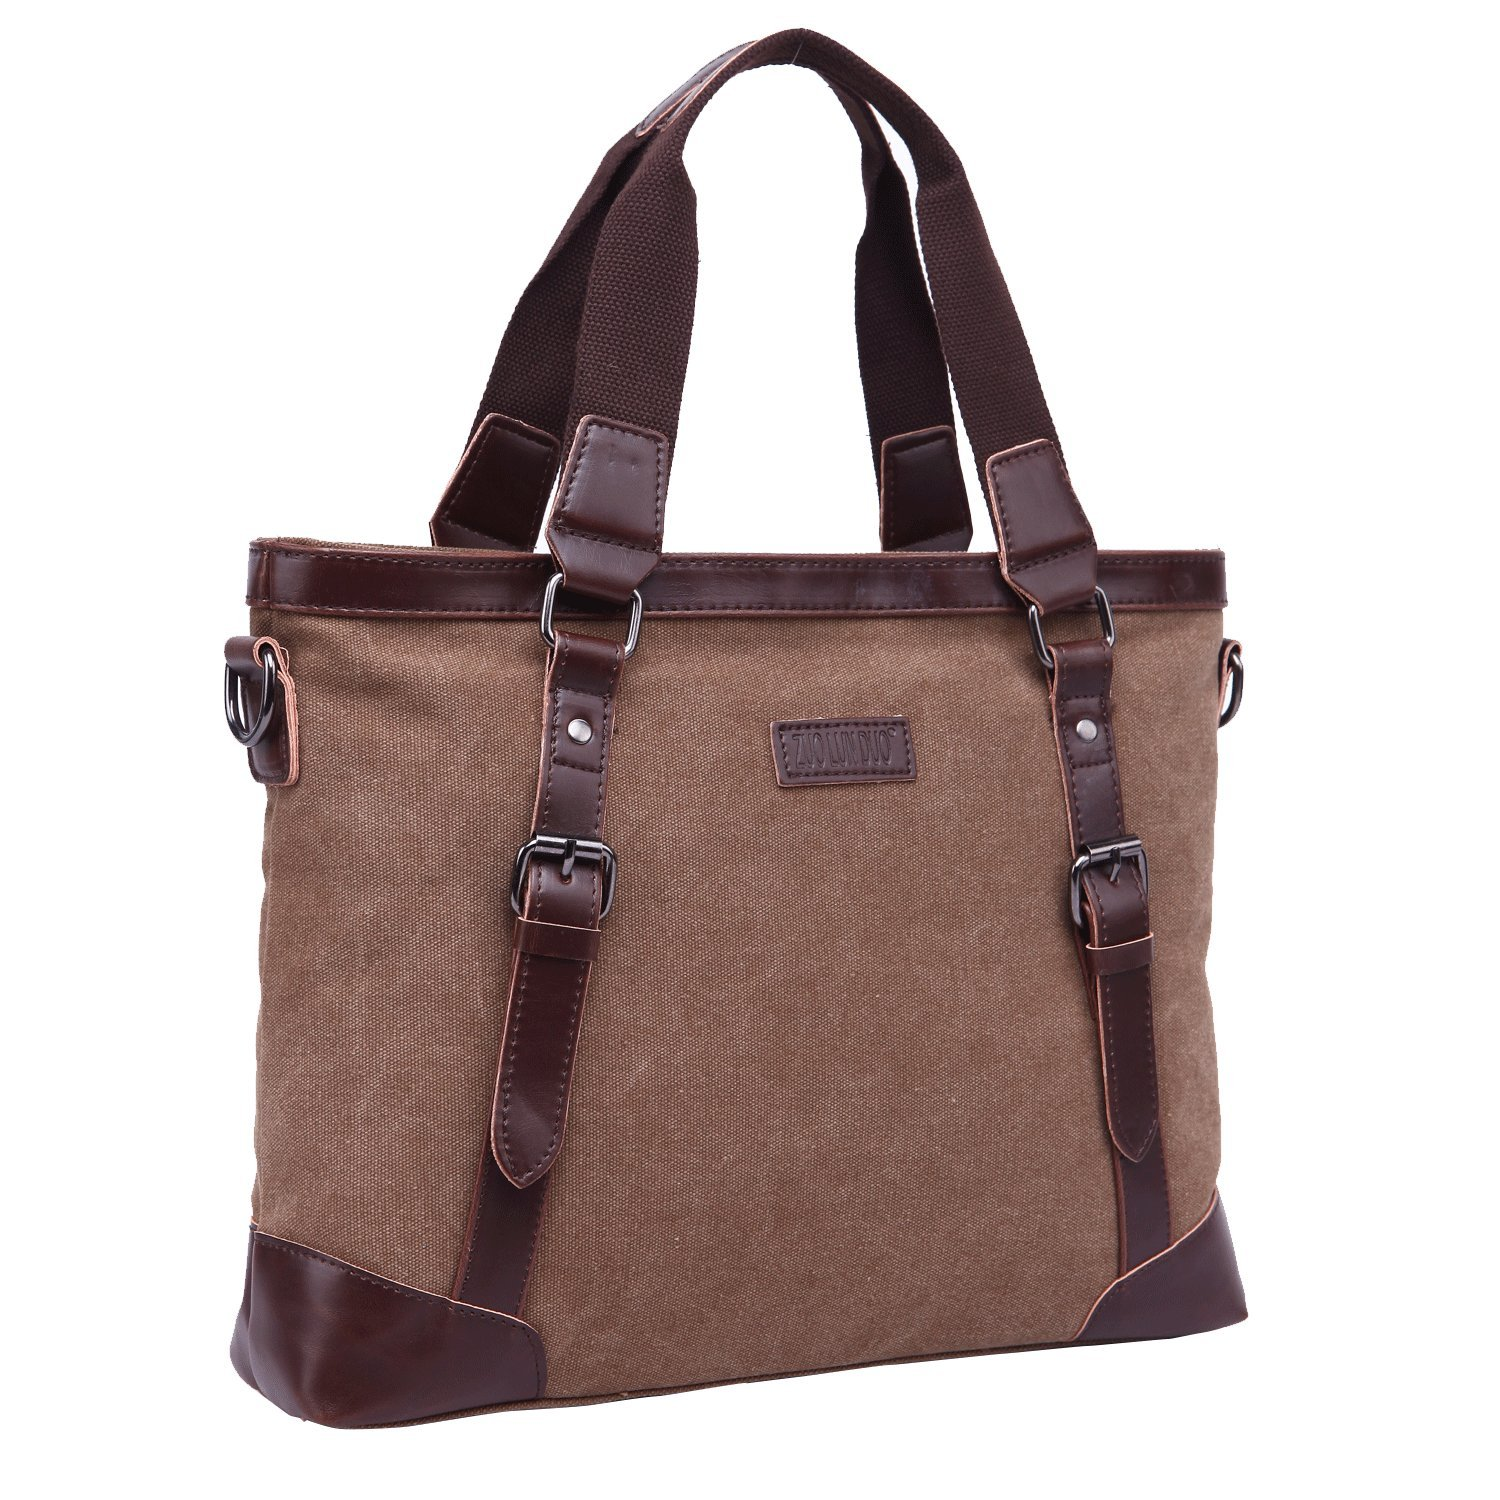 JCTHBAG Men Women 14 Inch Laptop Notebook Totes Canvas Shoulder Messenger Bag Coffee